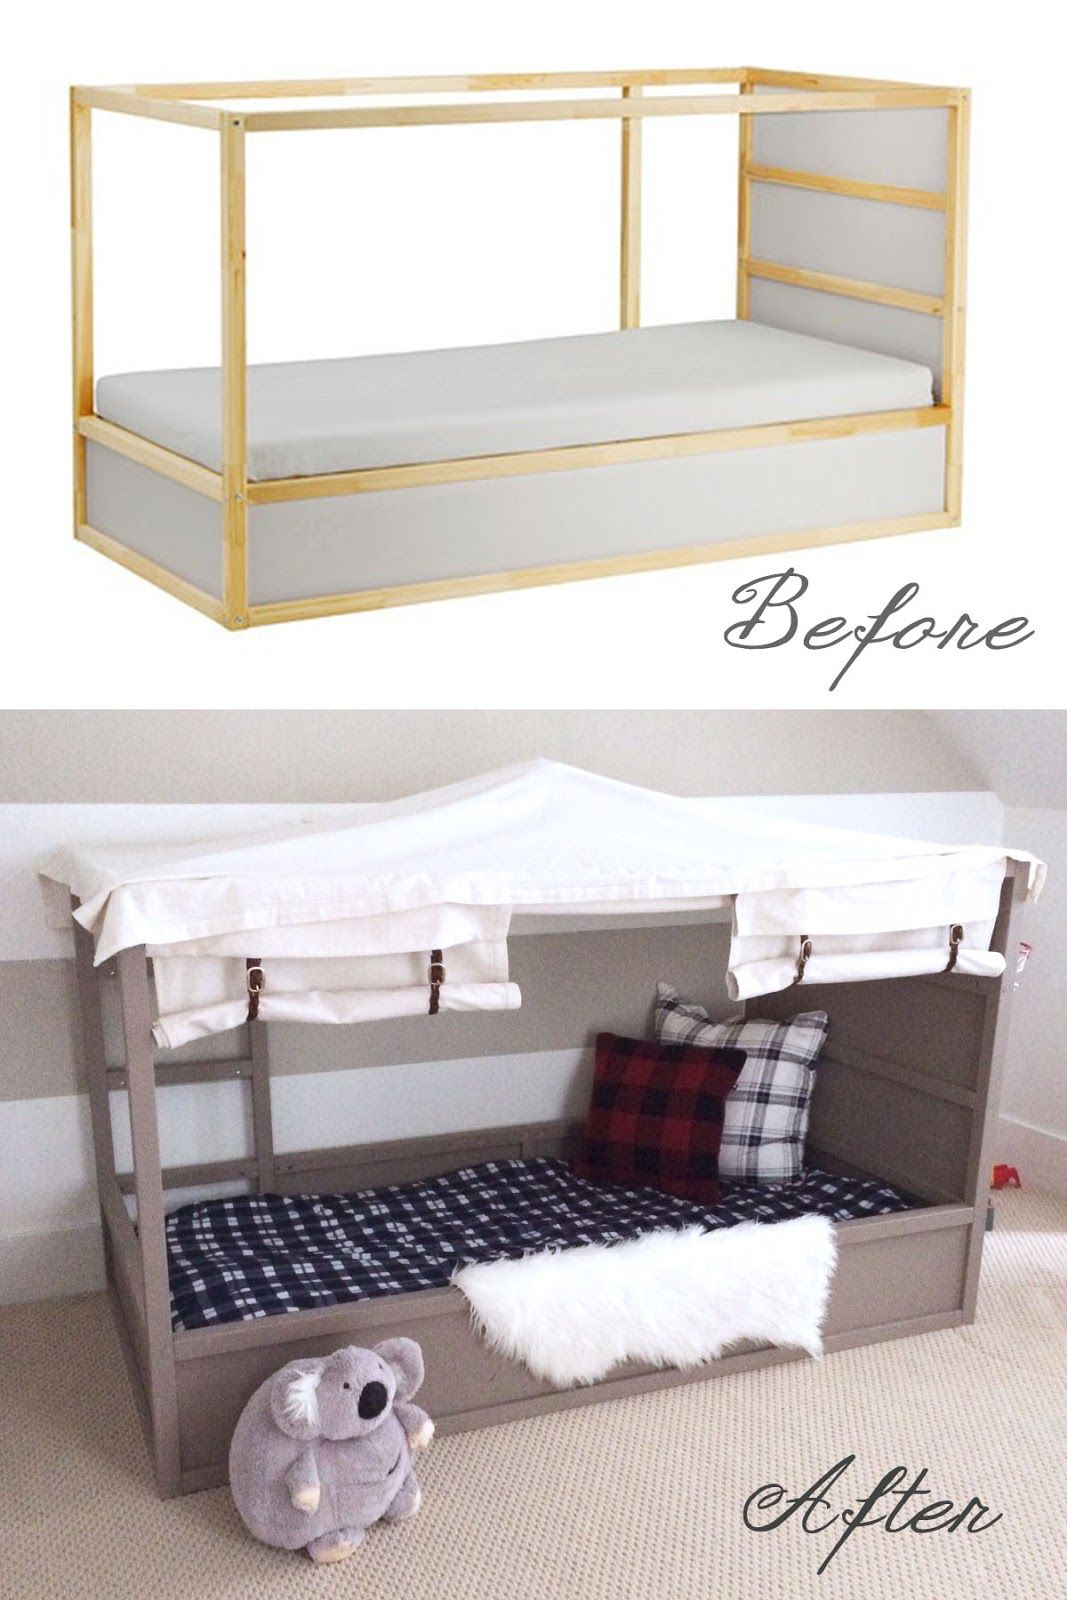 Harlow Thistle Home Design Lifestyle Diy Ikea Kura Bed Hack Diy Boy Canopy Bed Ikea Kura Bed Boys Bed Canopy Ikea Kura